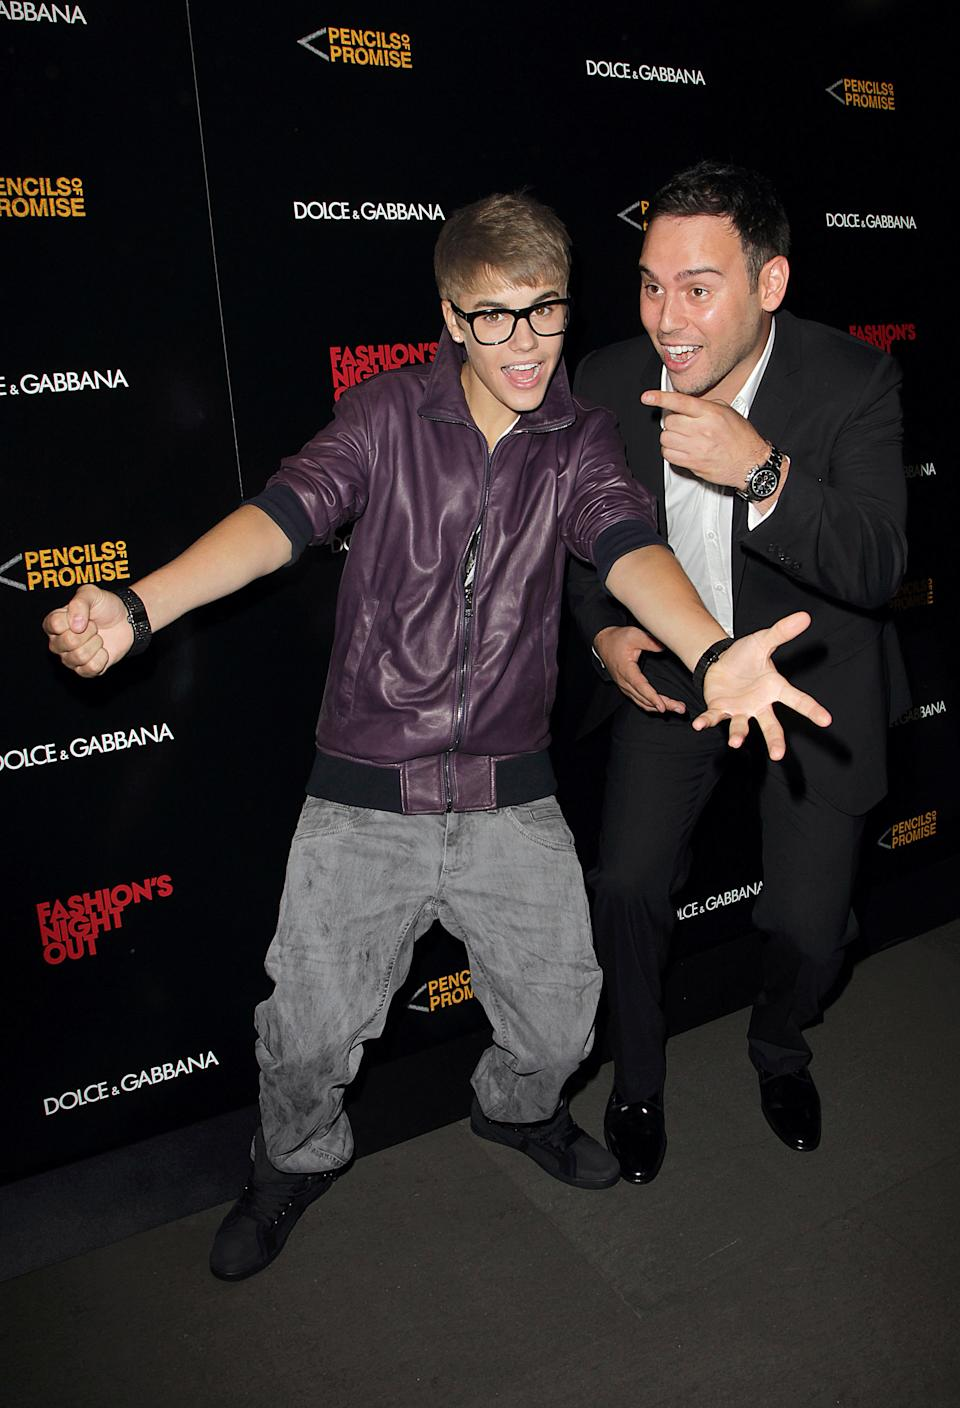 Singer Justin Bieber, left, and and Scooter Braun attend the Fashion Night Out Dolce & Gabbana at the Dolce & Gabbana store on Madison & 69th street on Thursday, Sept. 8, 2011. (AP Photo/Donald Traill)